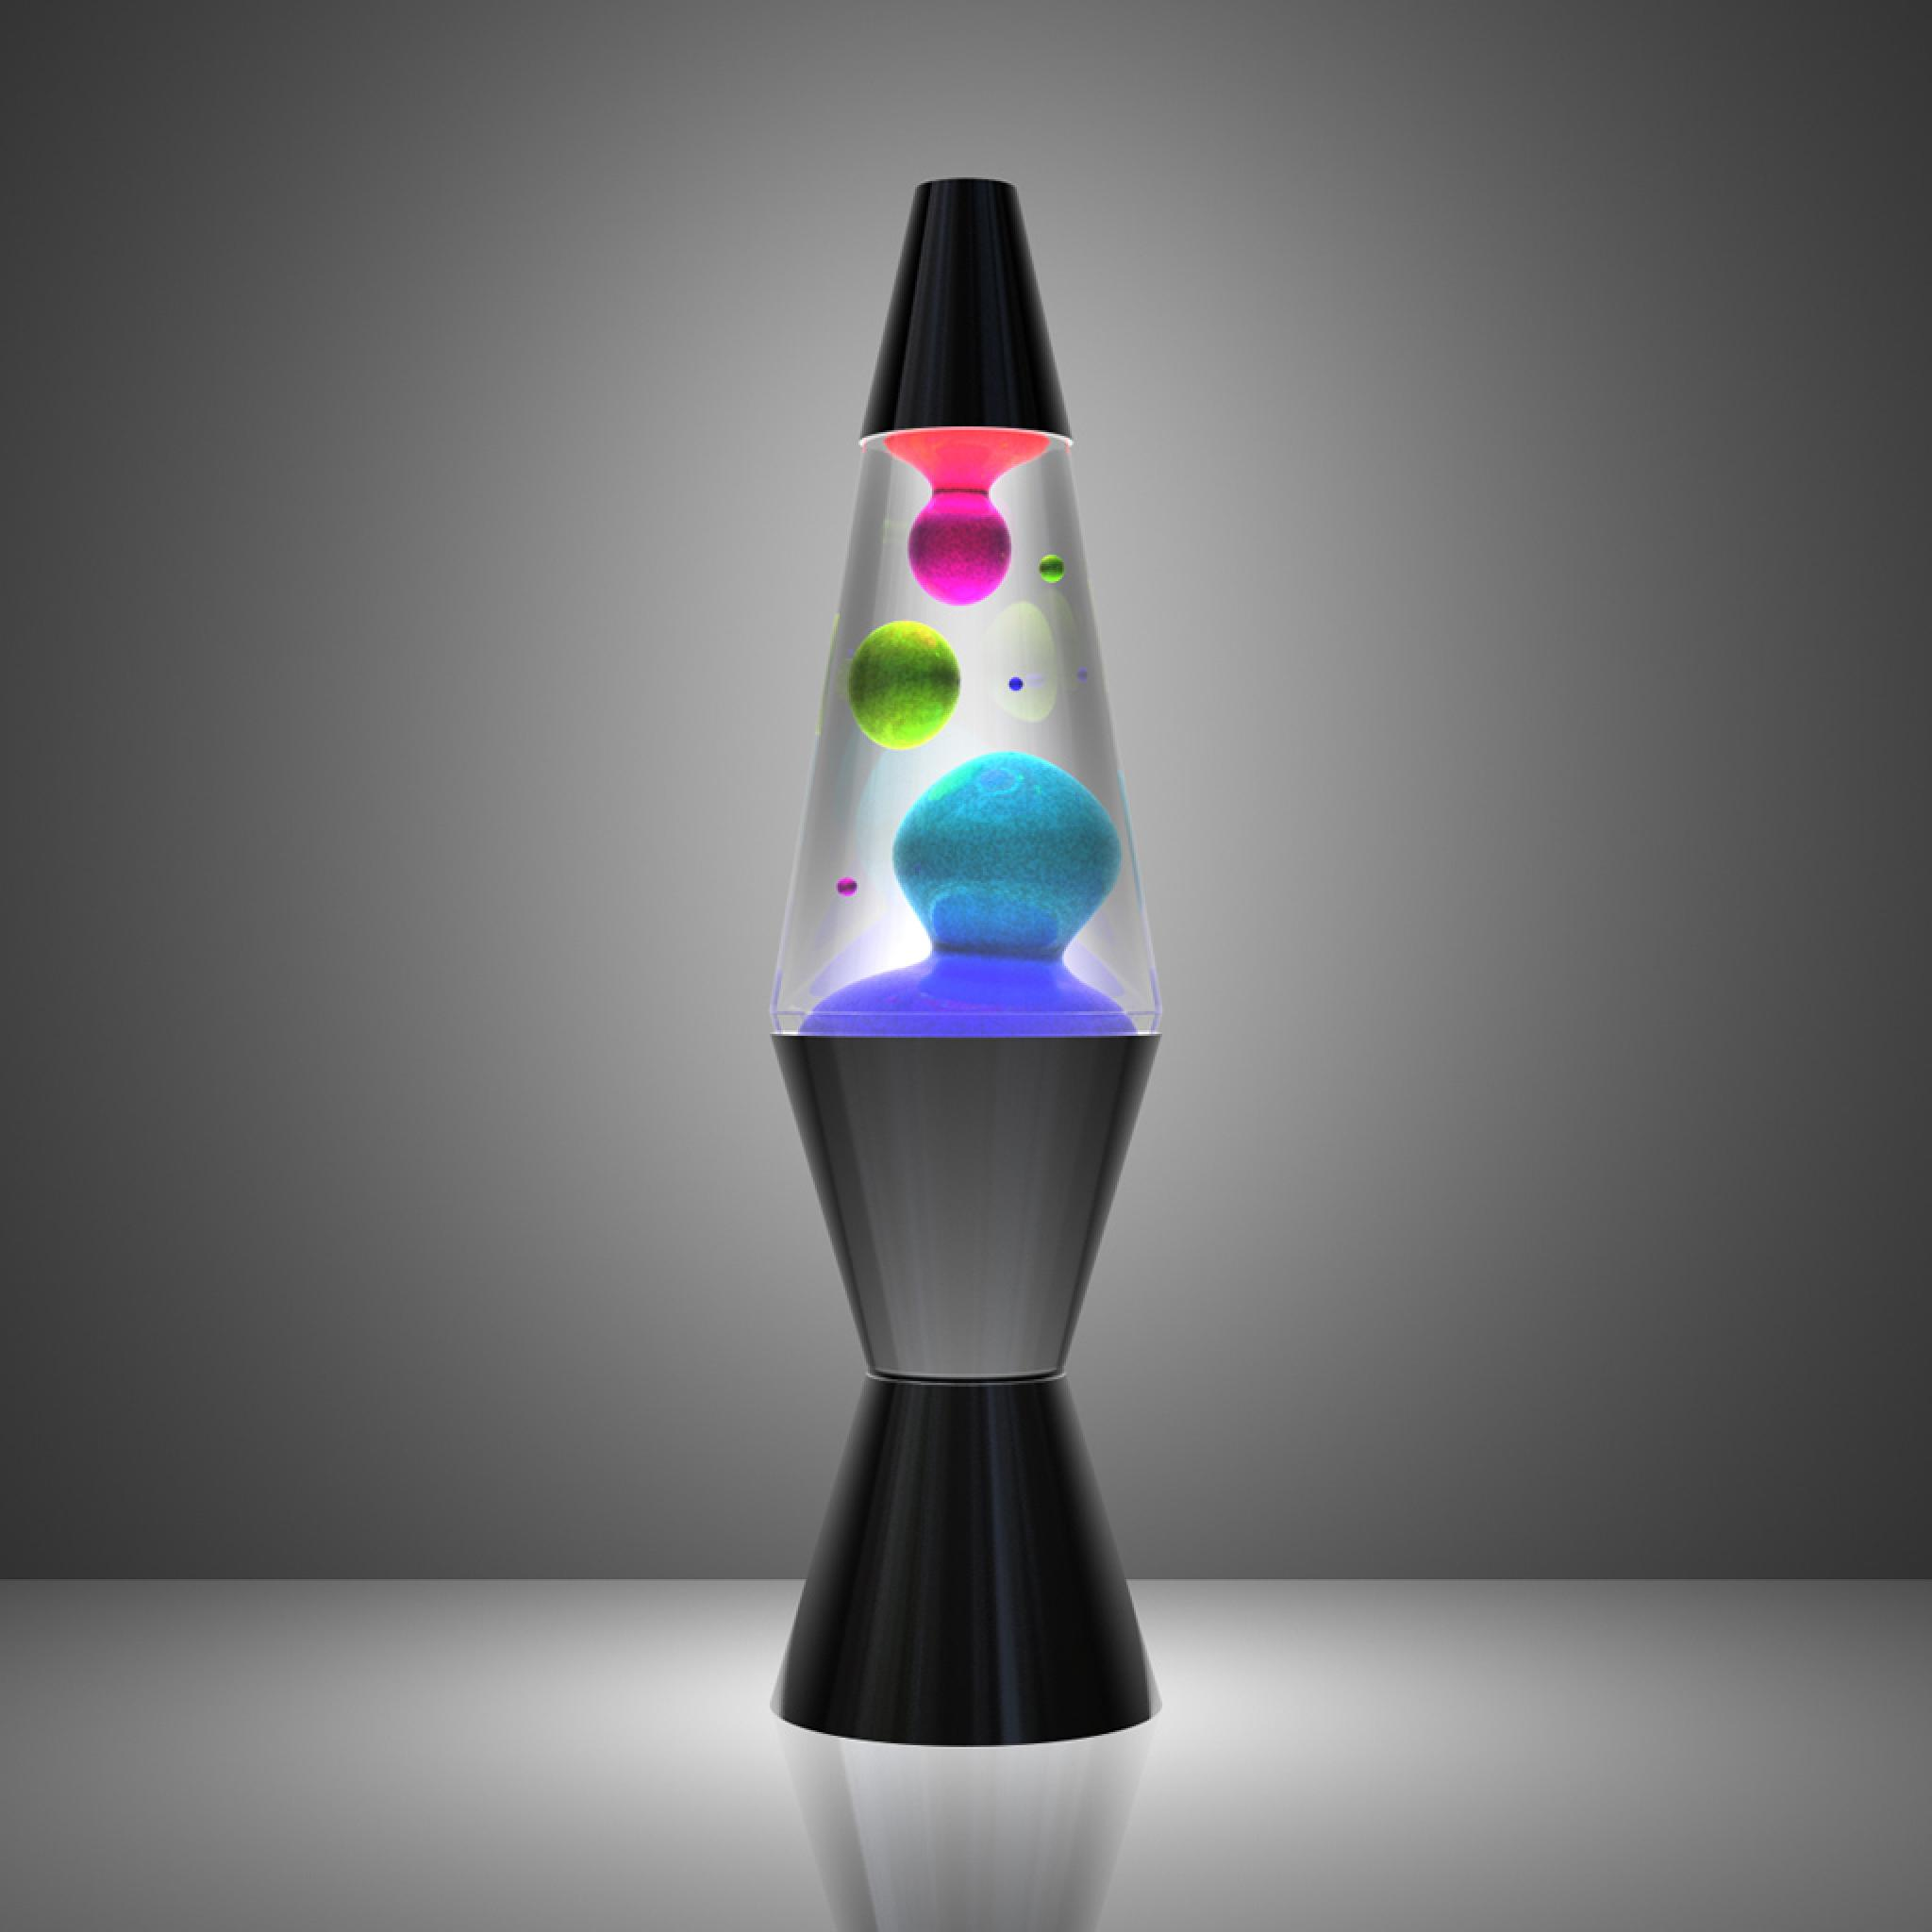 Lava Lamp Wallpaper Animated Wallpapersafari